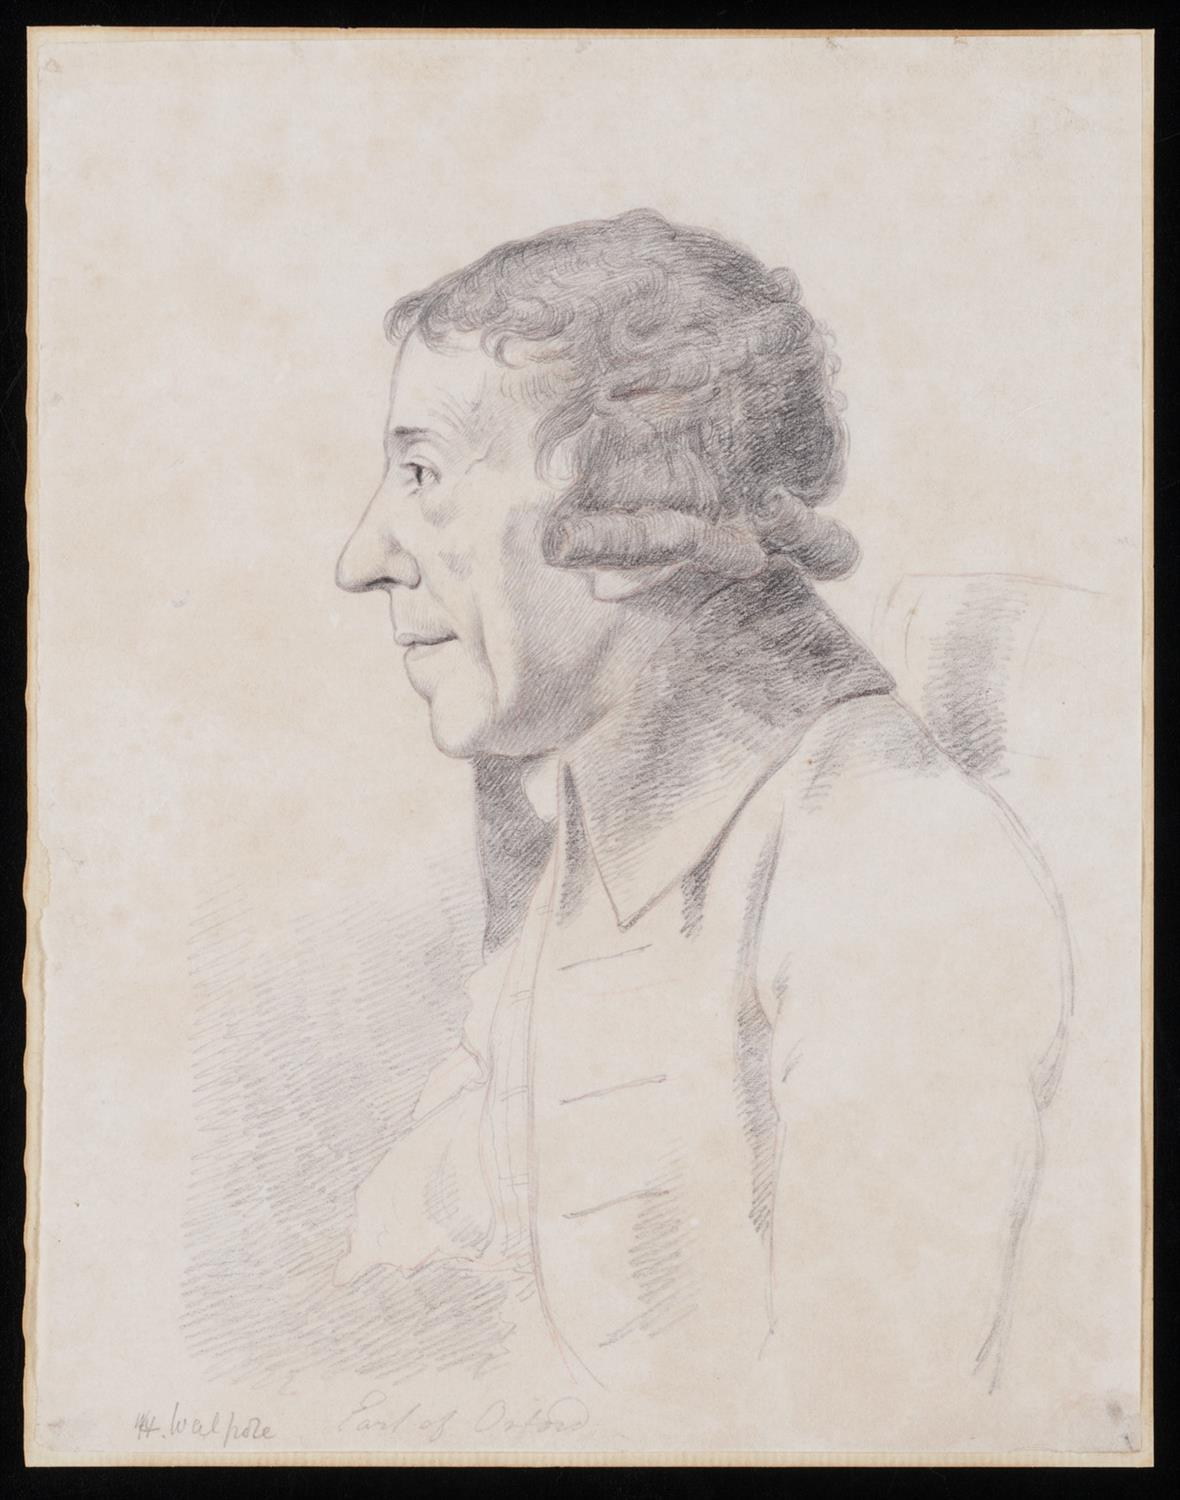 Pencil drawing of Horace Walpole, Earl of Orford, in profile looking left, half-length view, seated in a chair.